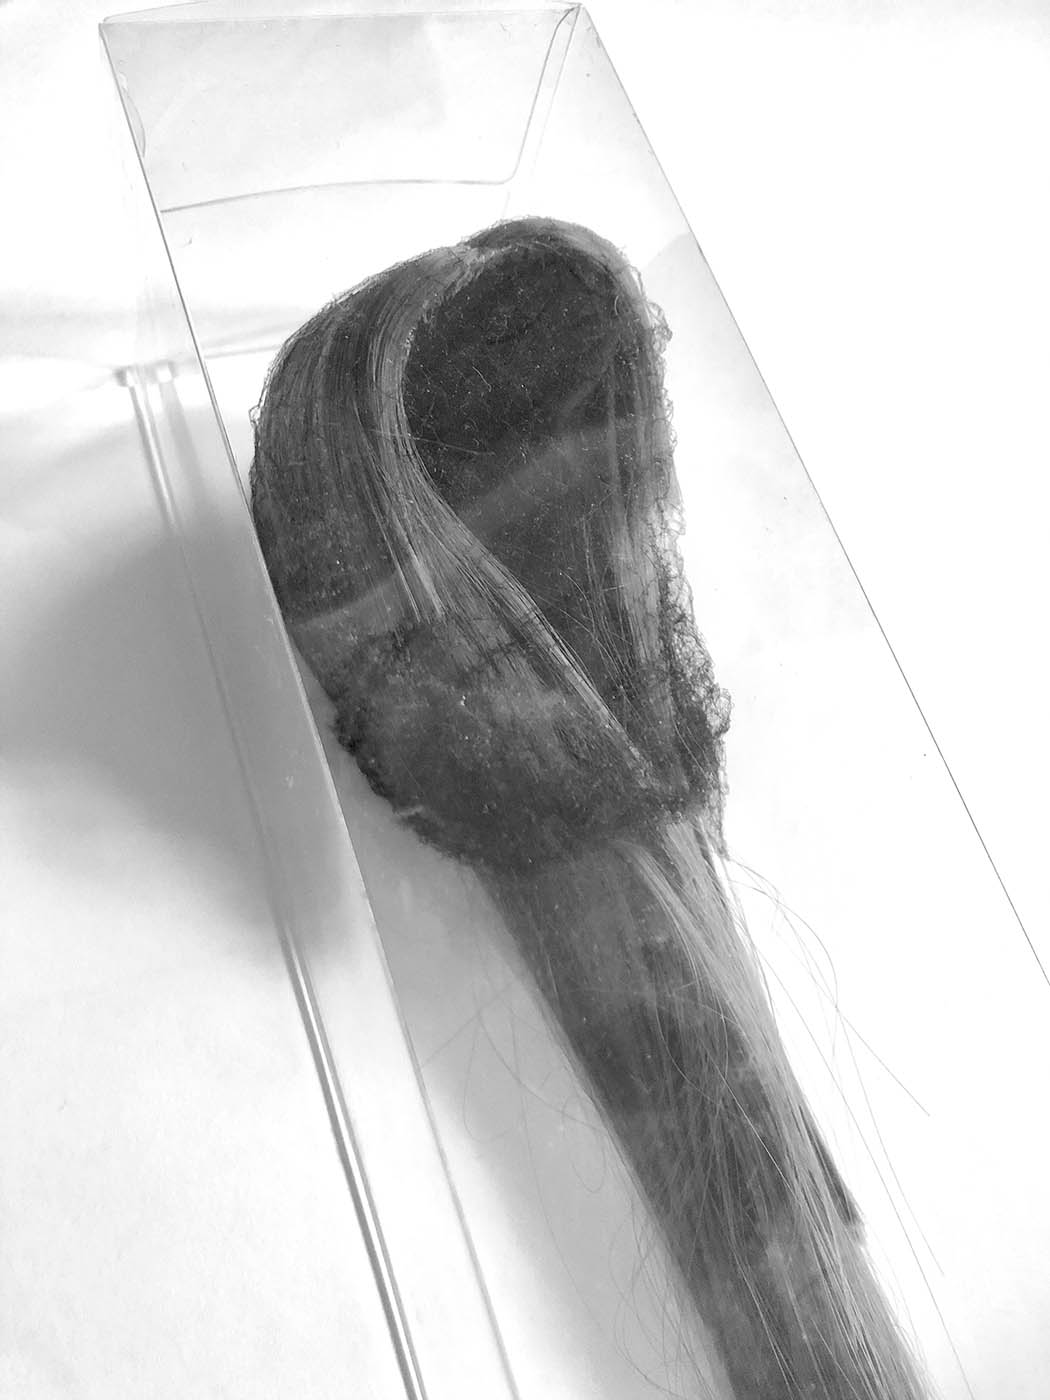 Black and white photo of lock of hair.